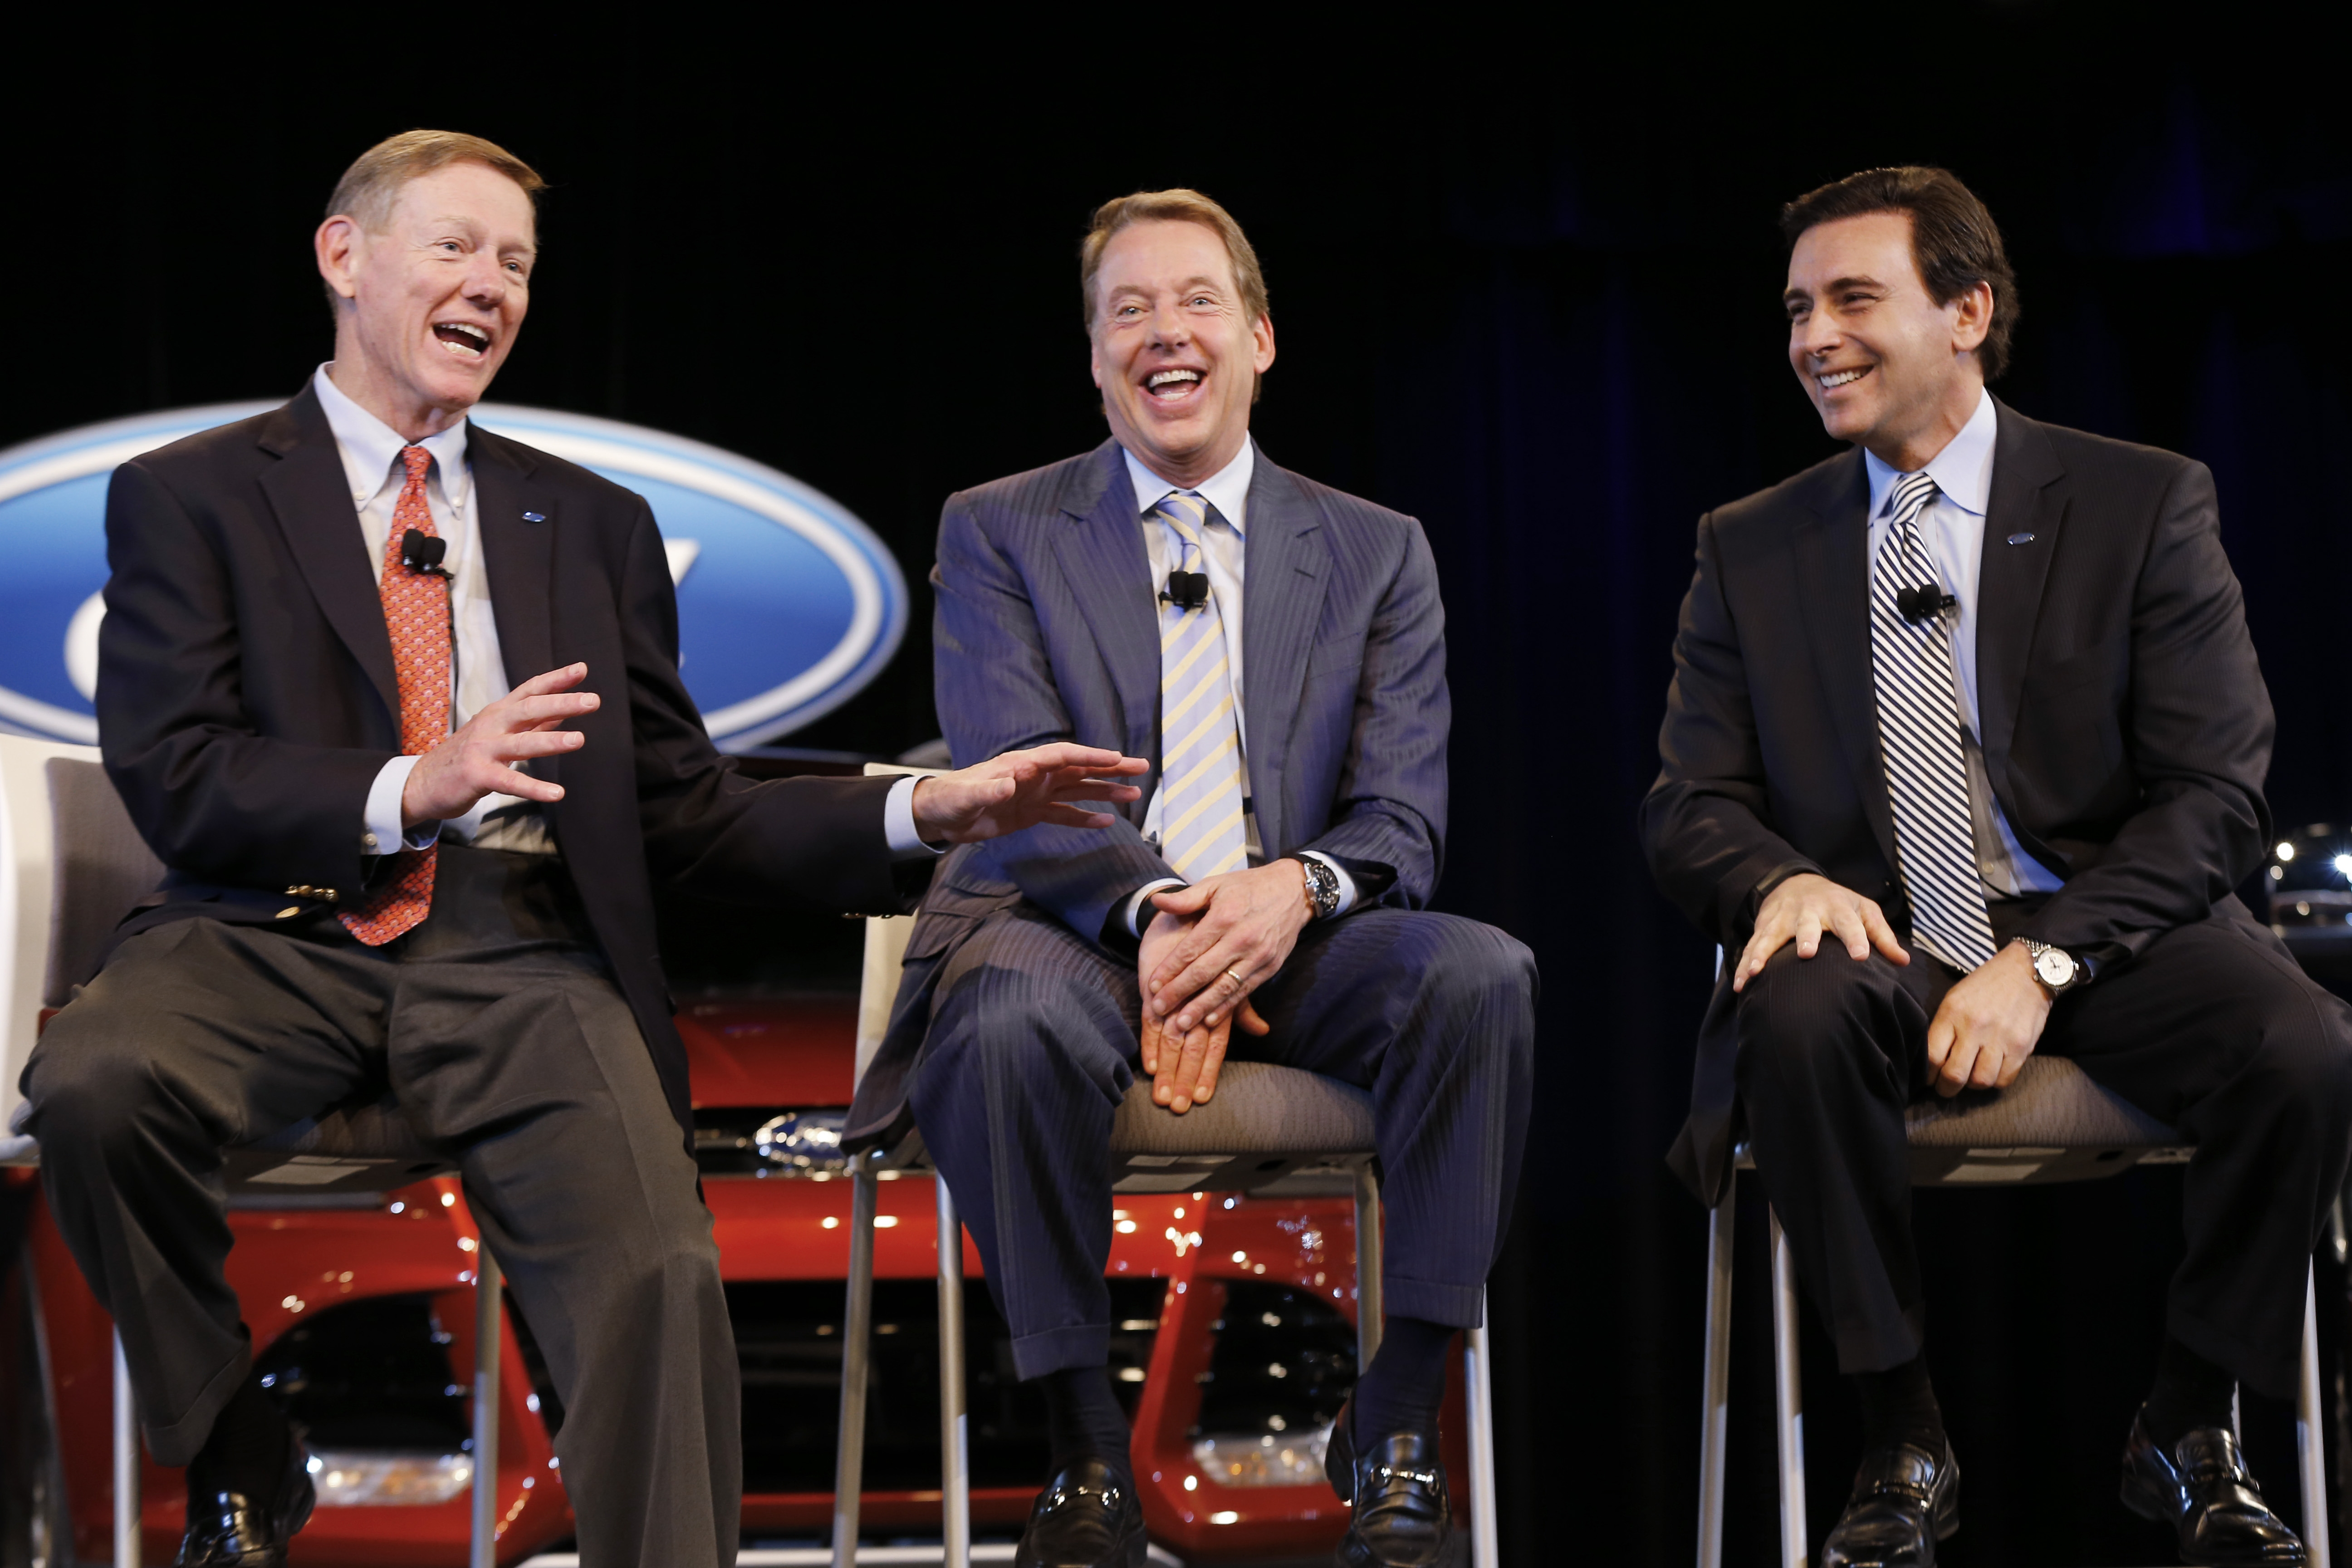 From left, Alan Mulally, president and CEO of Ford Motor Co., Executive Chairman Bill Ford Jr. and Chief Operating Officer Mark Fields speak during Thursday news conference in Dearborn, Mich.